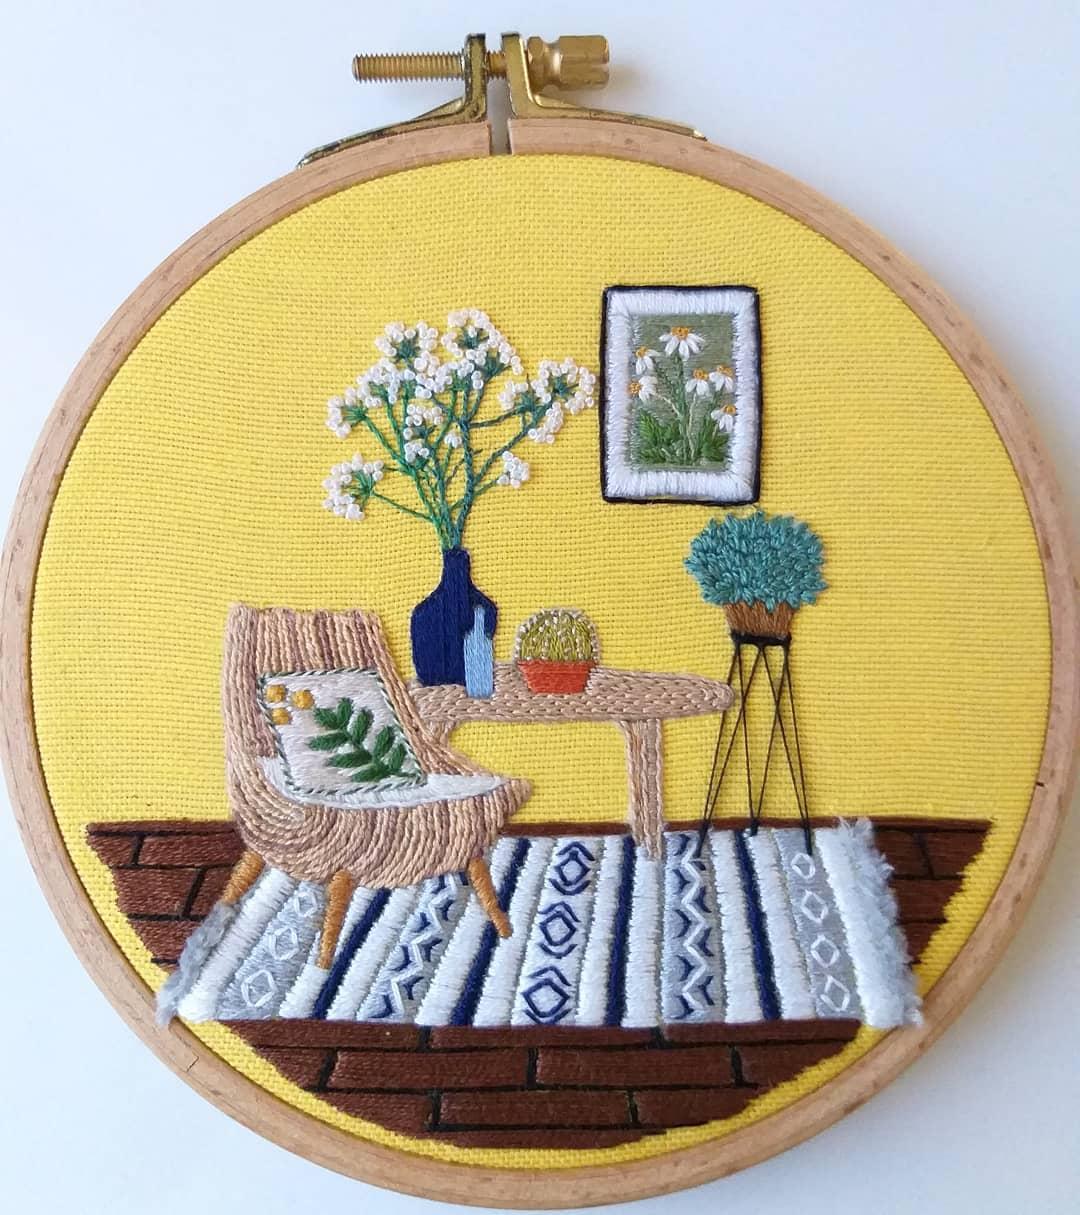 Interior embroidery by Fatma Karaca